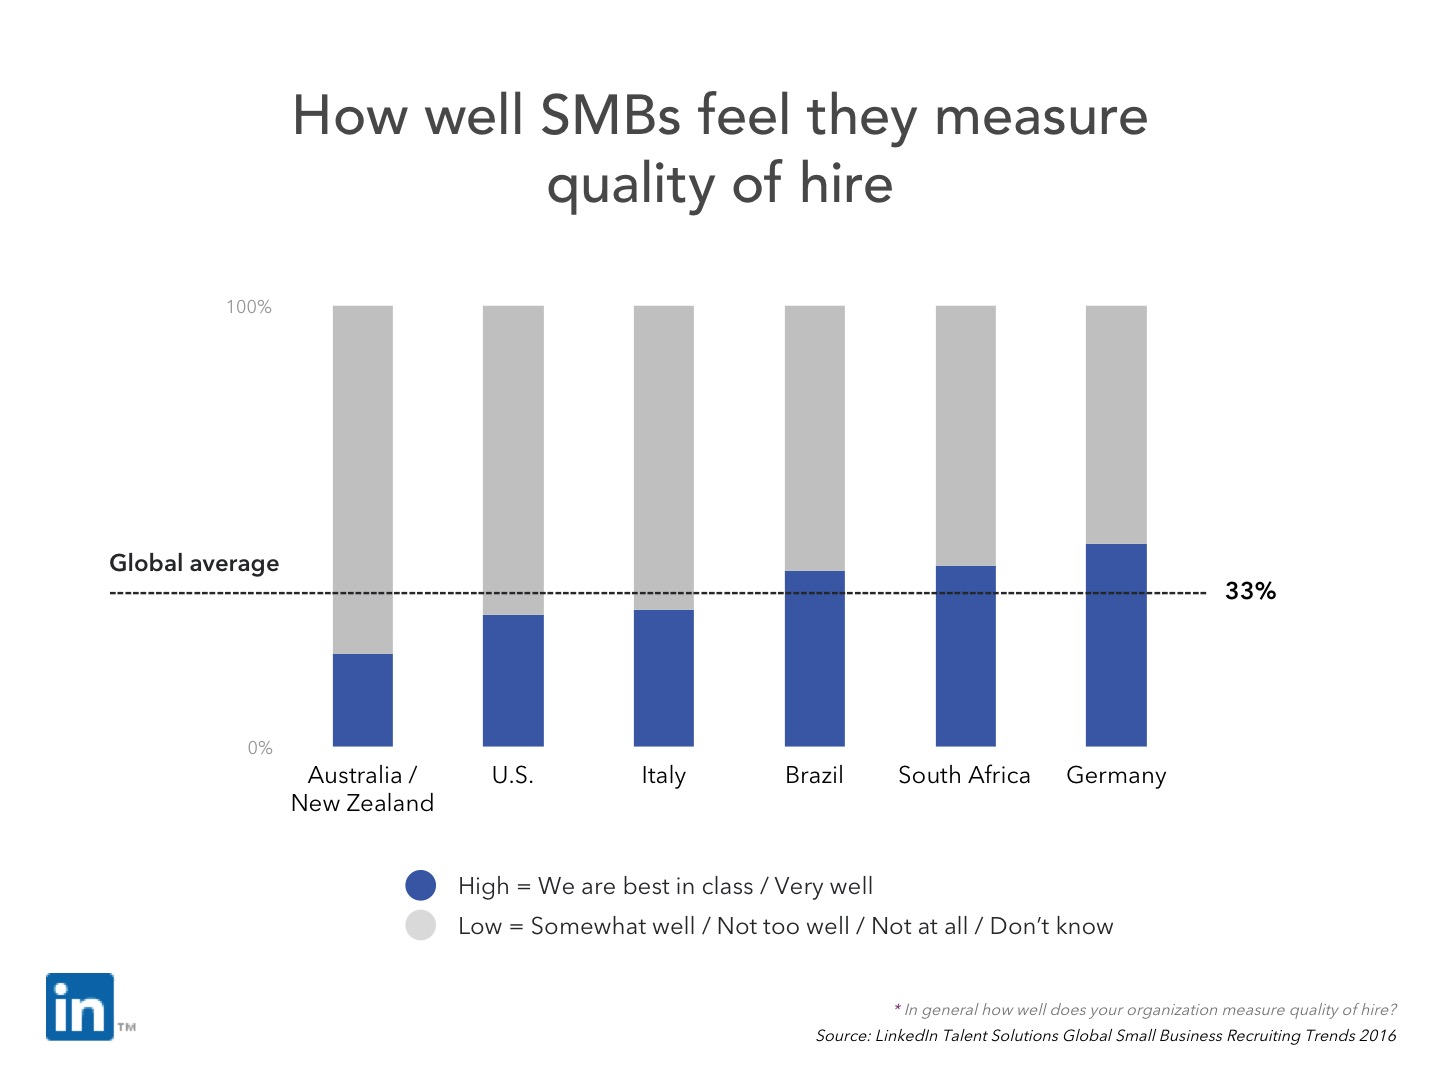 slide-14-how-well-smbs-feel-they-measure-quality-of-hire